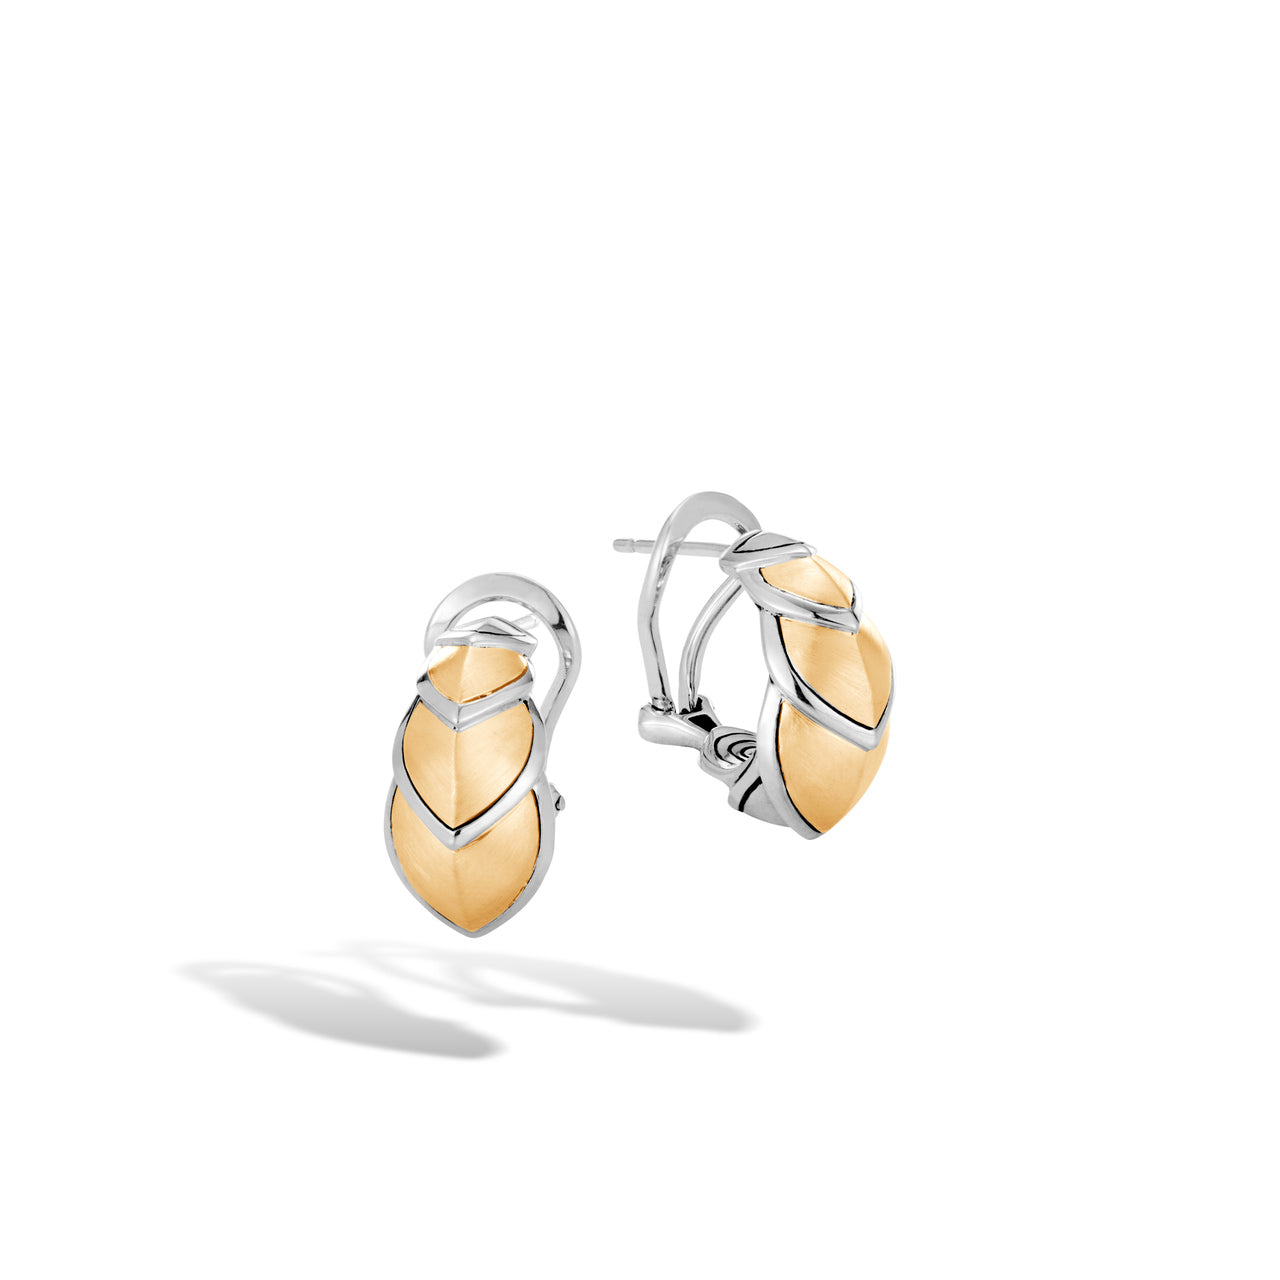 John Hardy Legends Naga Sterling Silver and Yellow Gold Buddha Belly Earrings